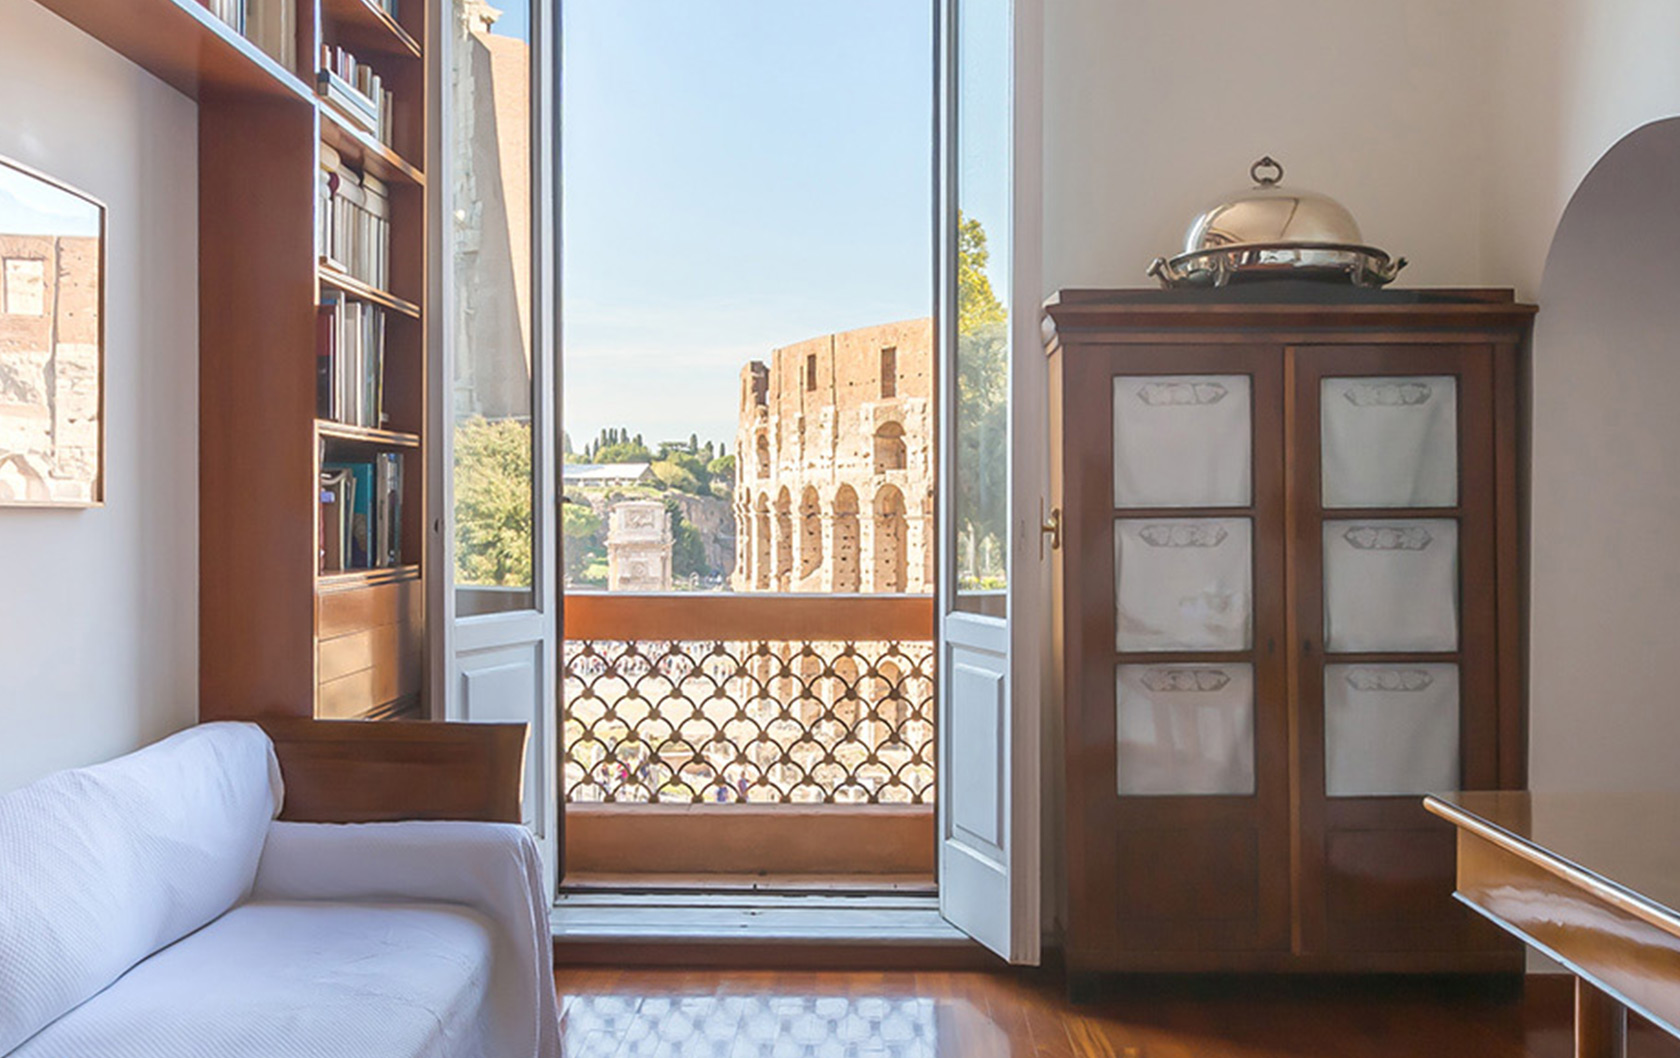 Timeless Views from the Imperial Vista Apartment